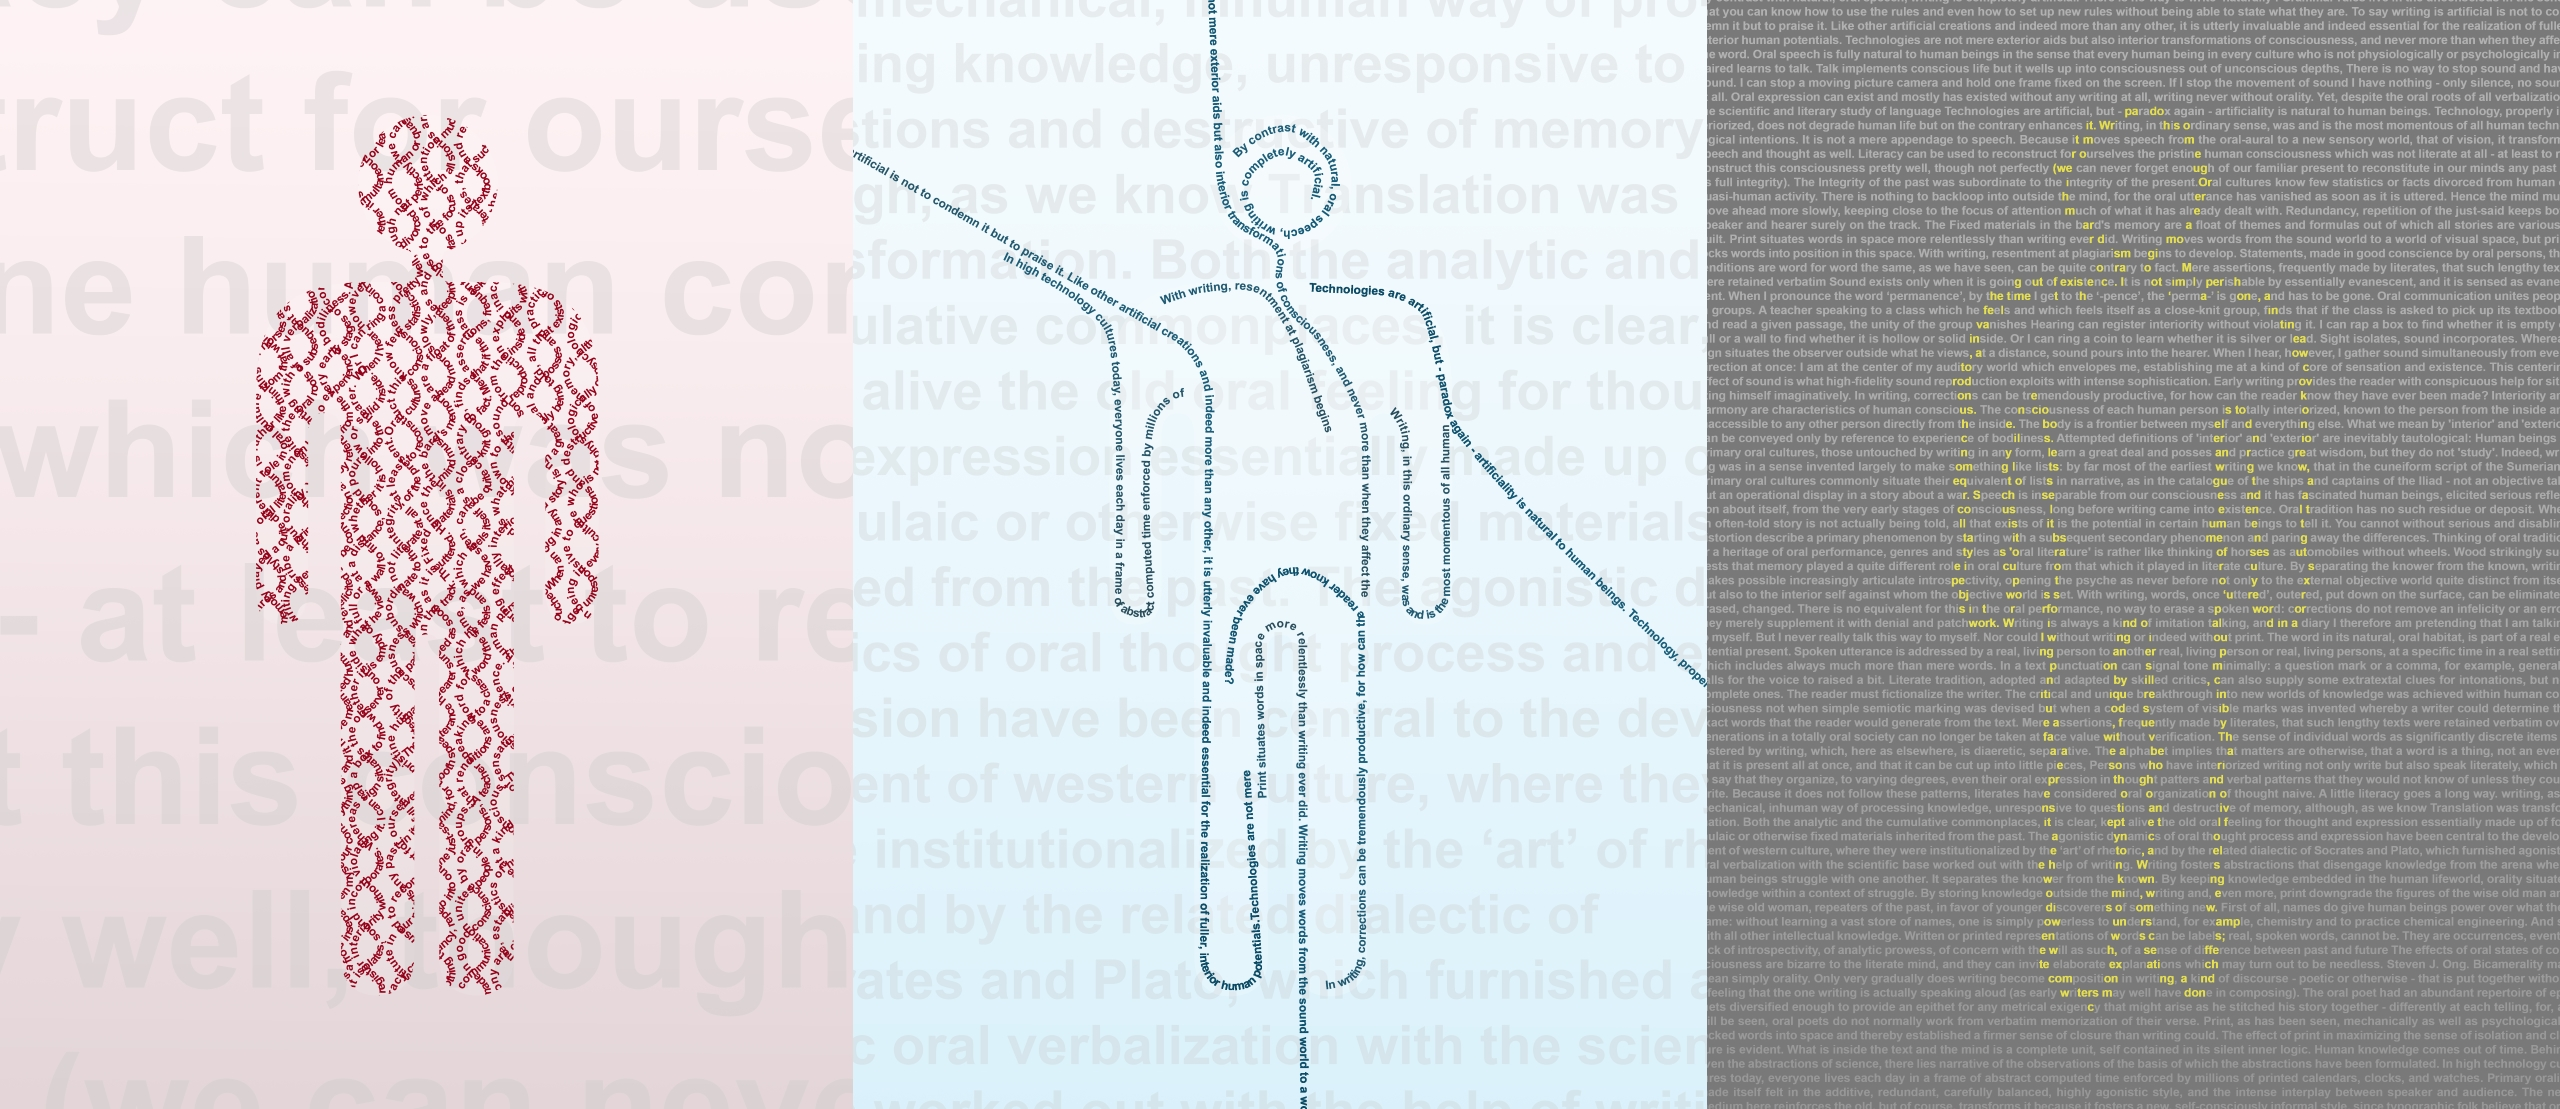 A series of three images. The first is a generic human form filled with red text in a double-helix formation. The background is pale pink with faint gray text. The second image is the same generic human form outlined with strings of blue text that shoot off in different directions. The background is pale blue with faint gray text. The third image is a page of light gray text on a dark gray background. The same generic human form is outlined in yellow highlighted letters. Image by Steven LeMieux.